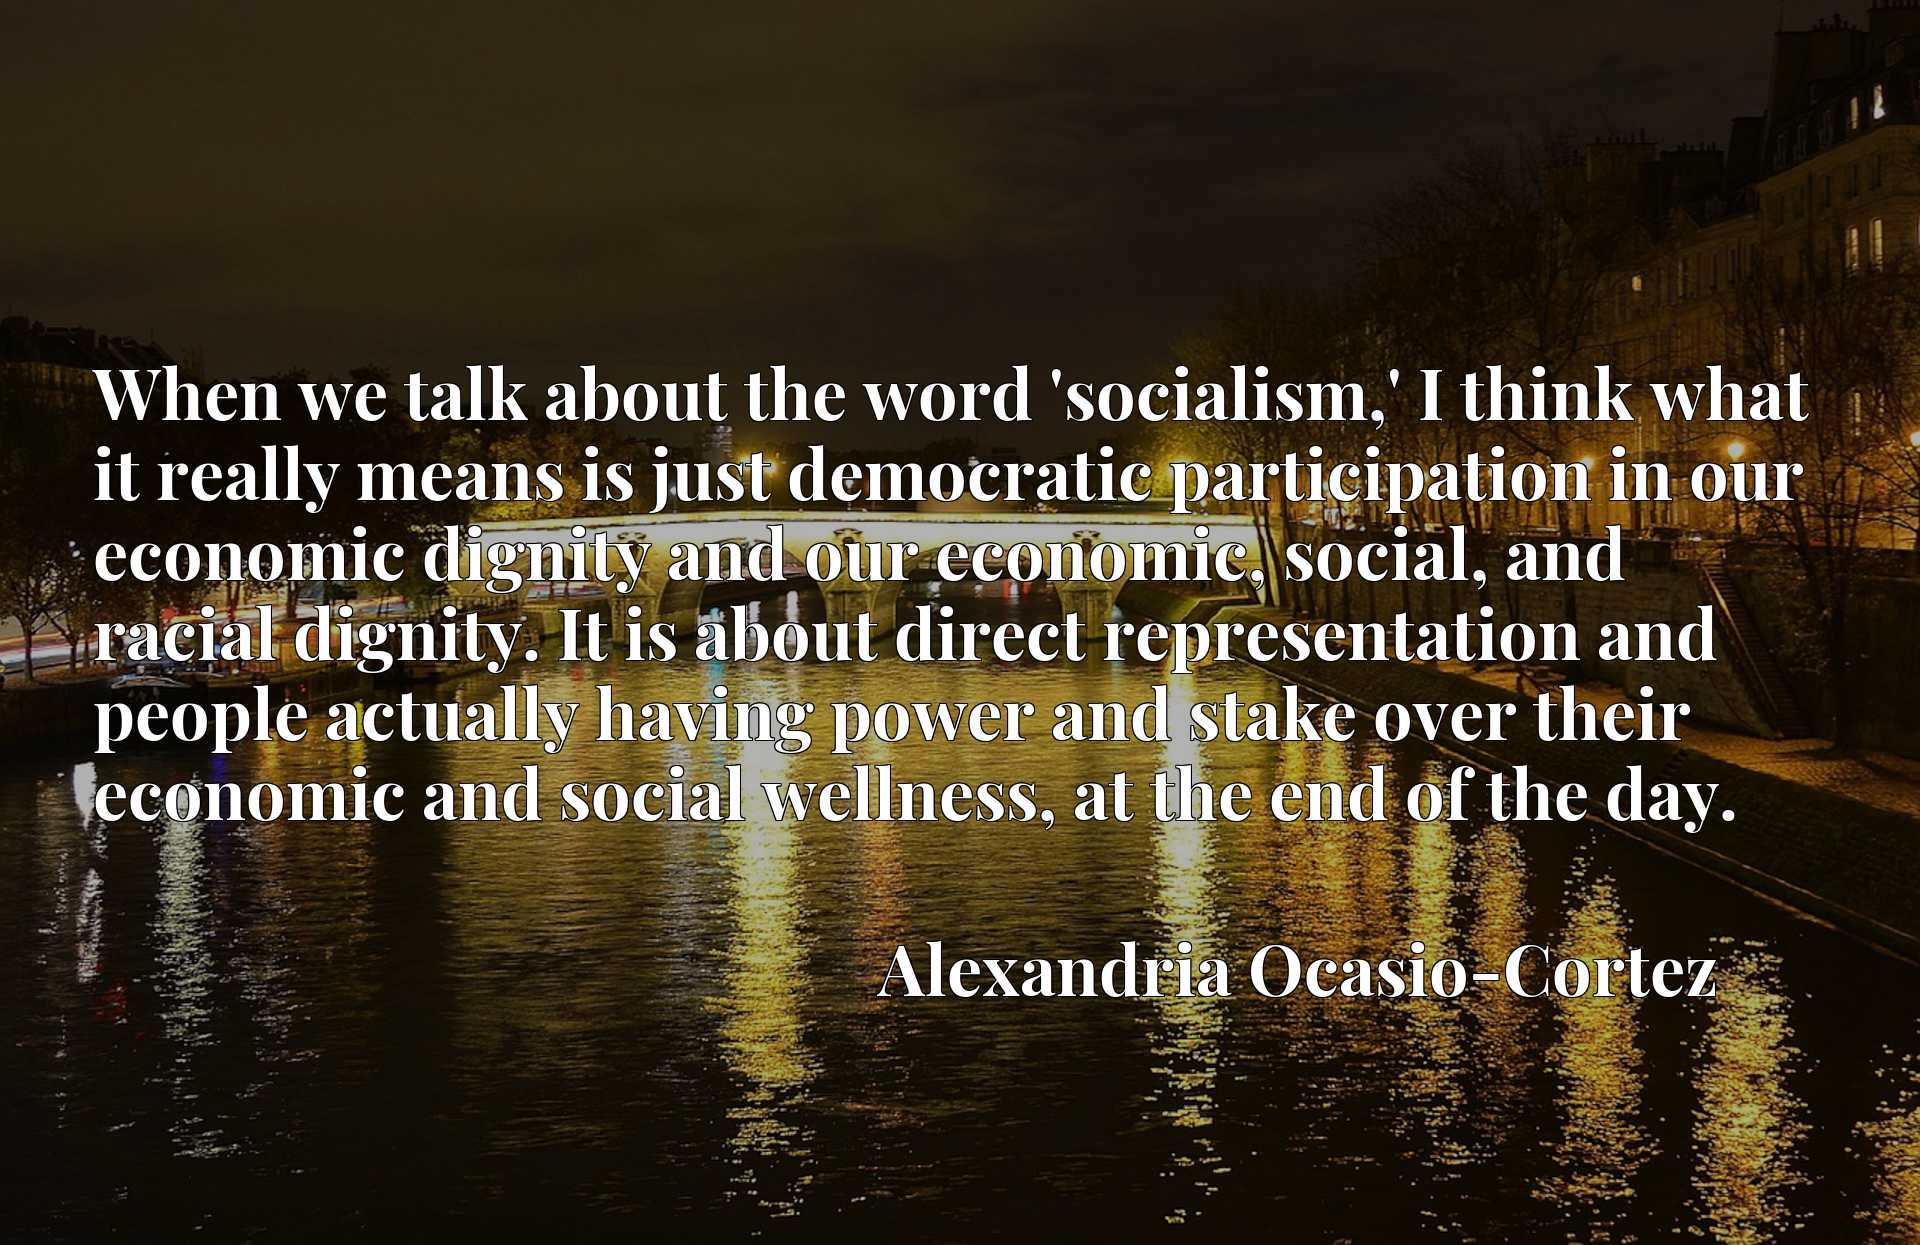 When we talk about the word 'socialism,' I think what it really means is just democratic participation in our economic dignity and our economic, social, and racial dignity. It is about direct representation and people actually having power and stake over their economic and social wellness, at the end of the day.